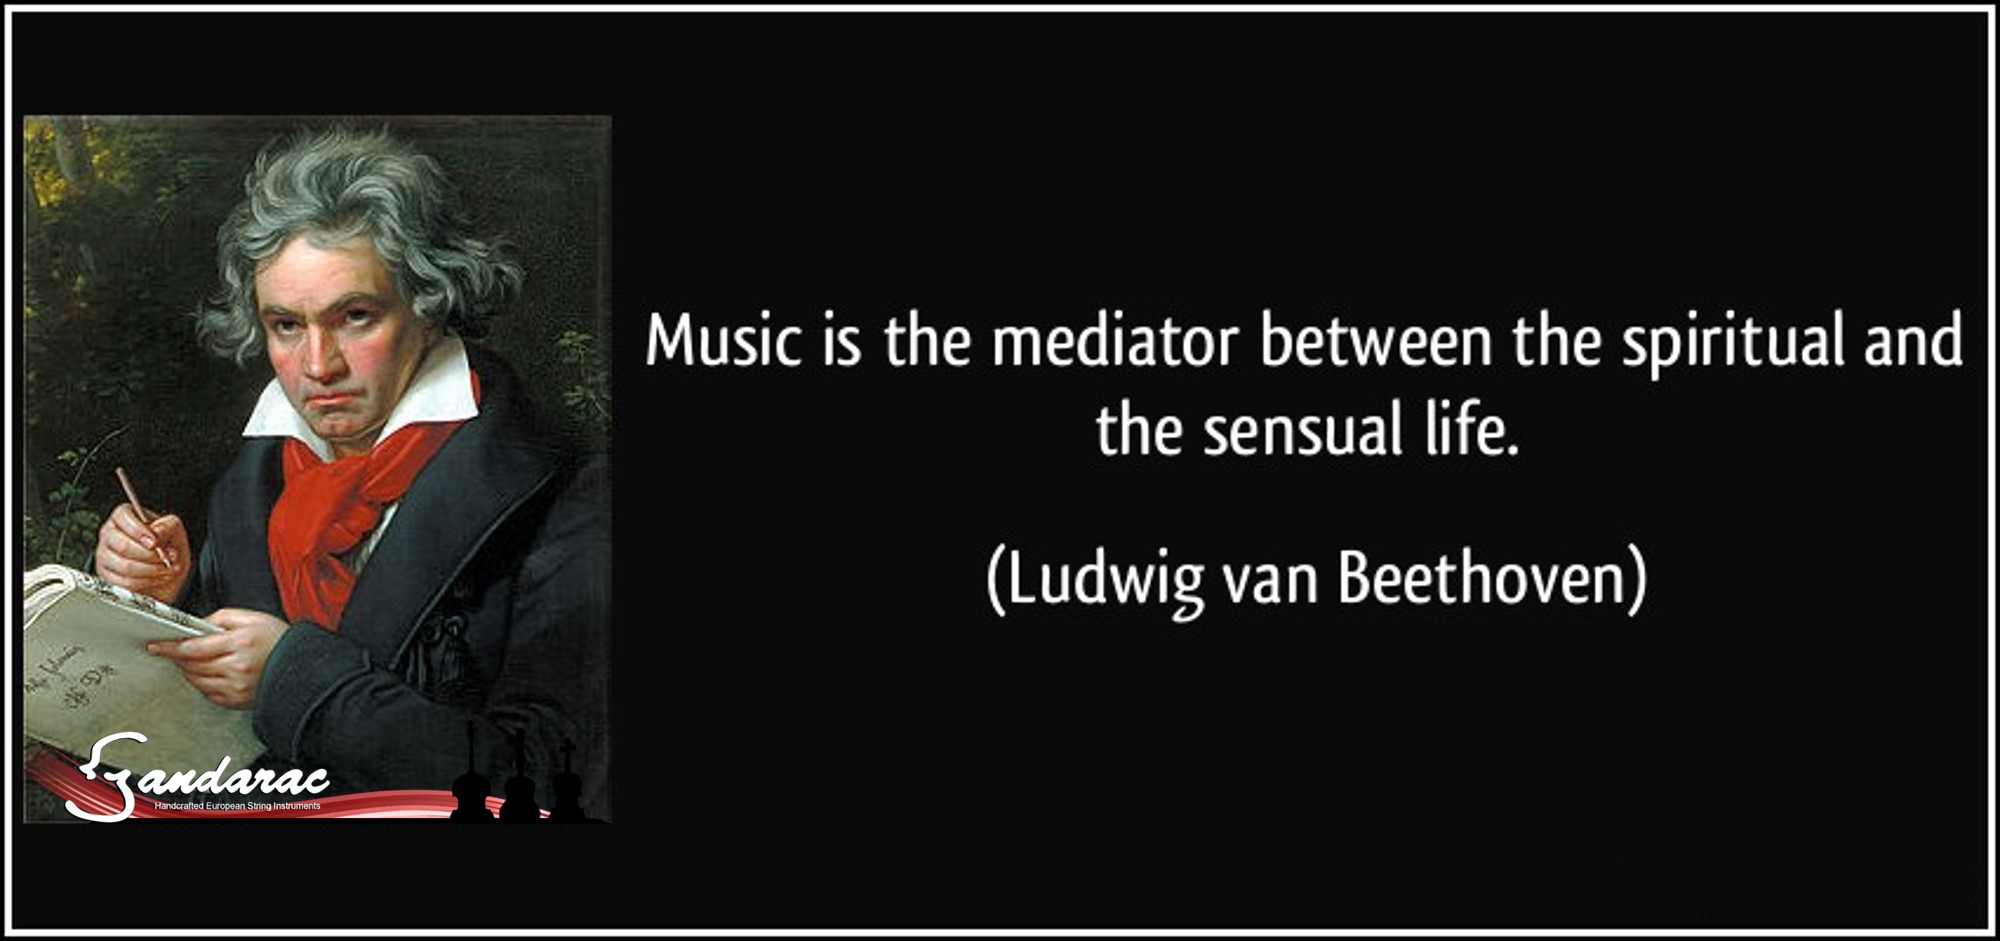 27 - music is the mediator